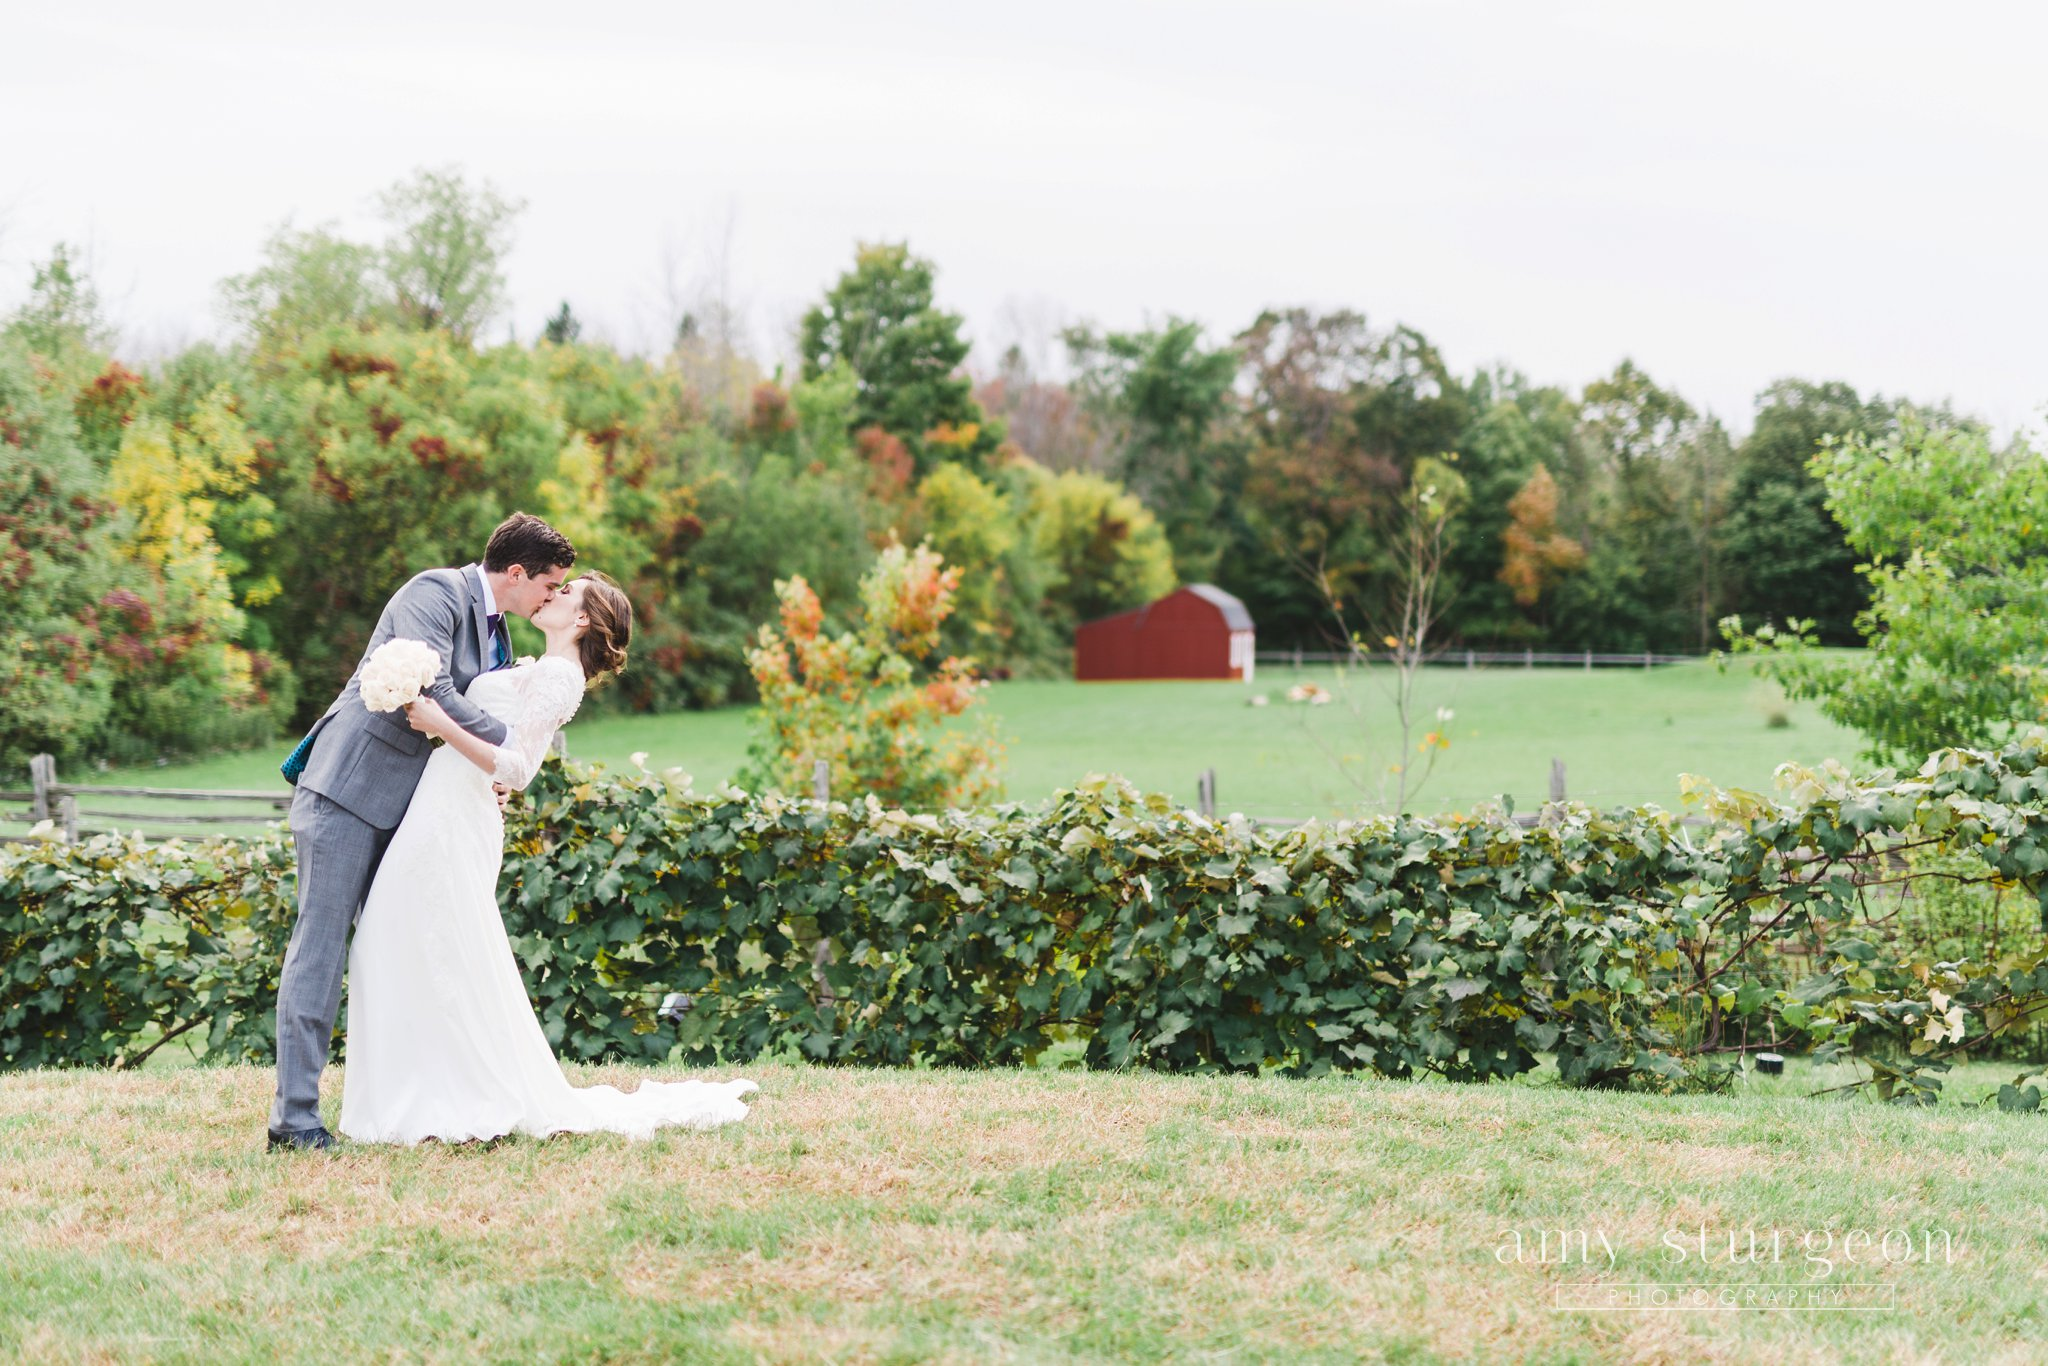 The groom dipped his bride for a kiss at the alpaca farm wedding